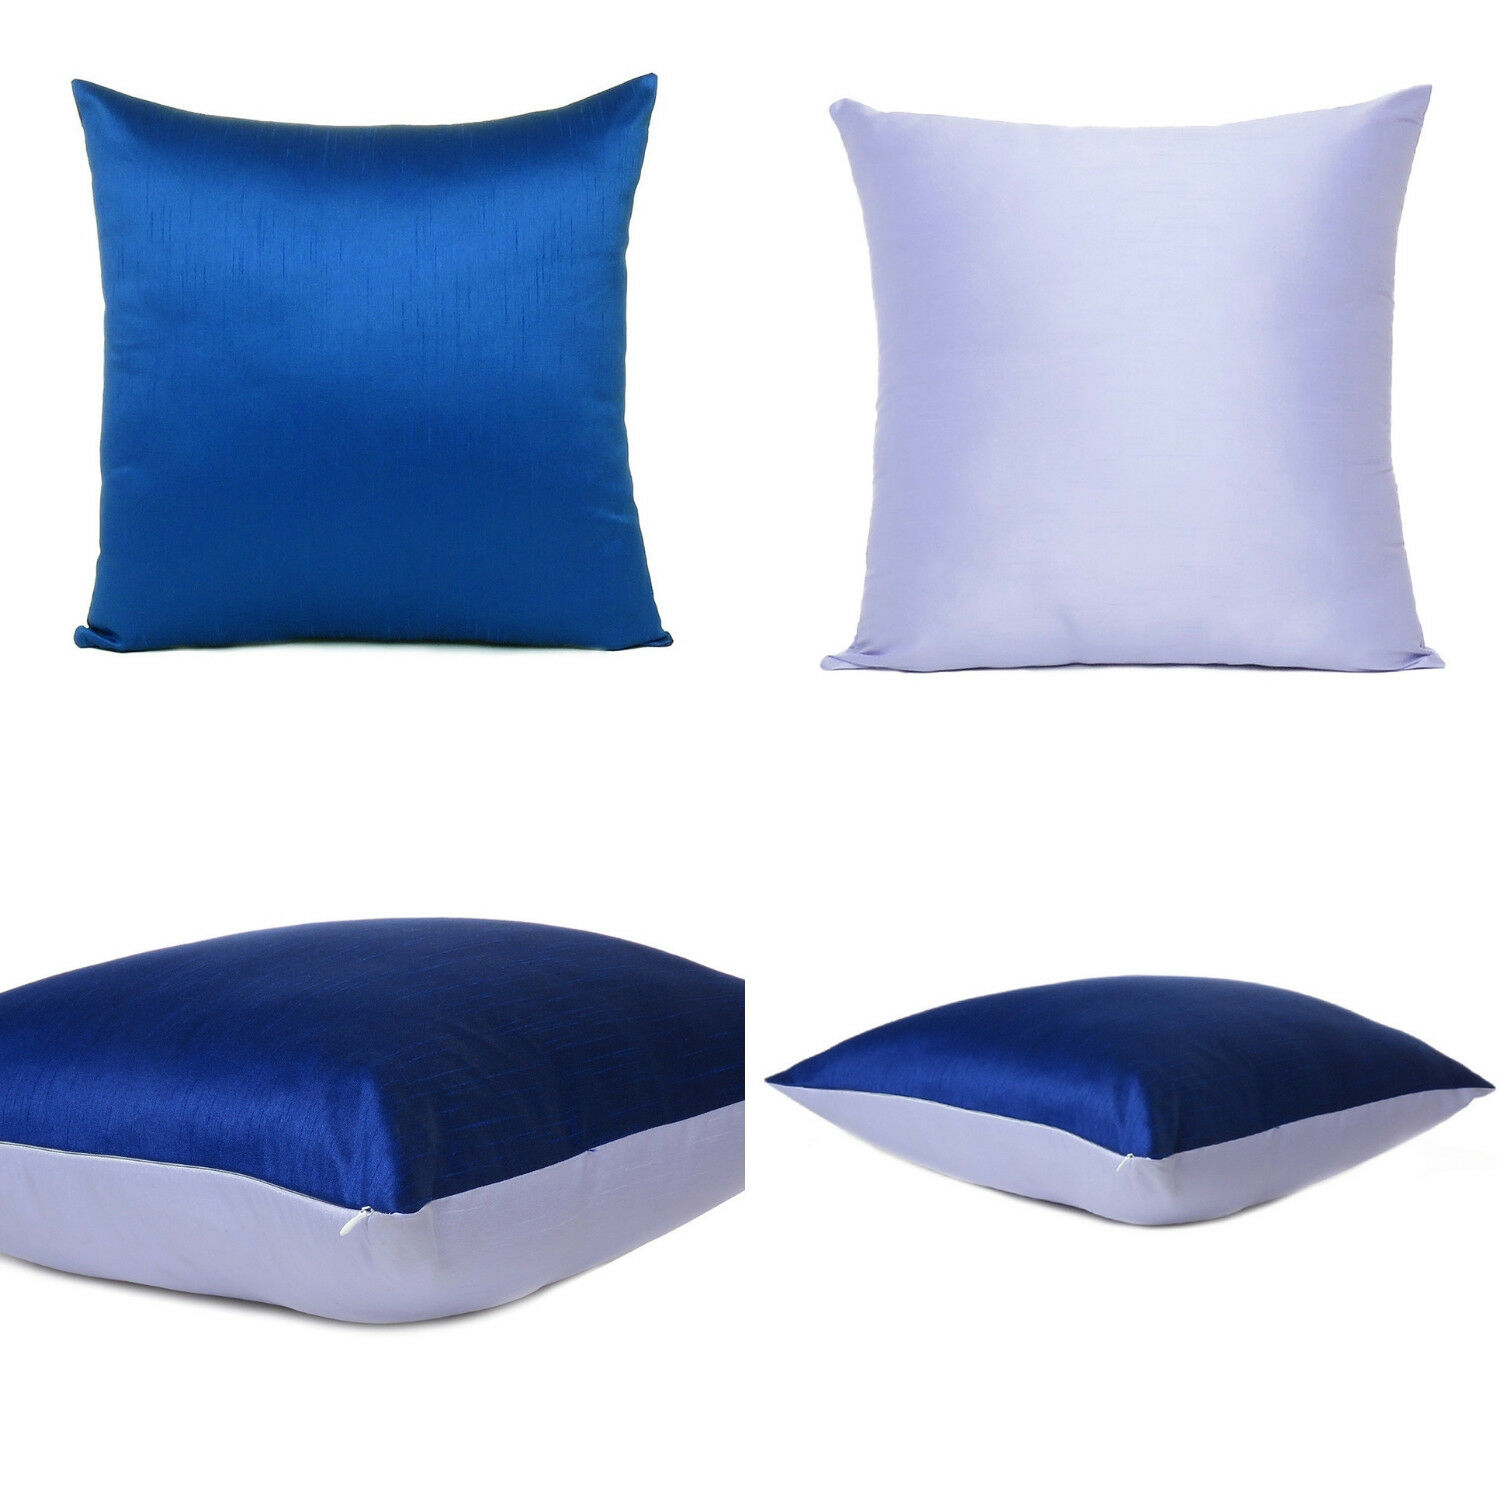 blue beige cover cushion both pillow sides